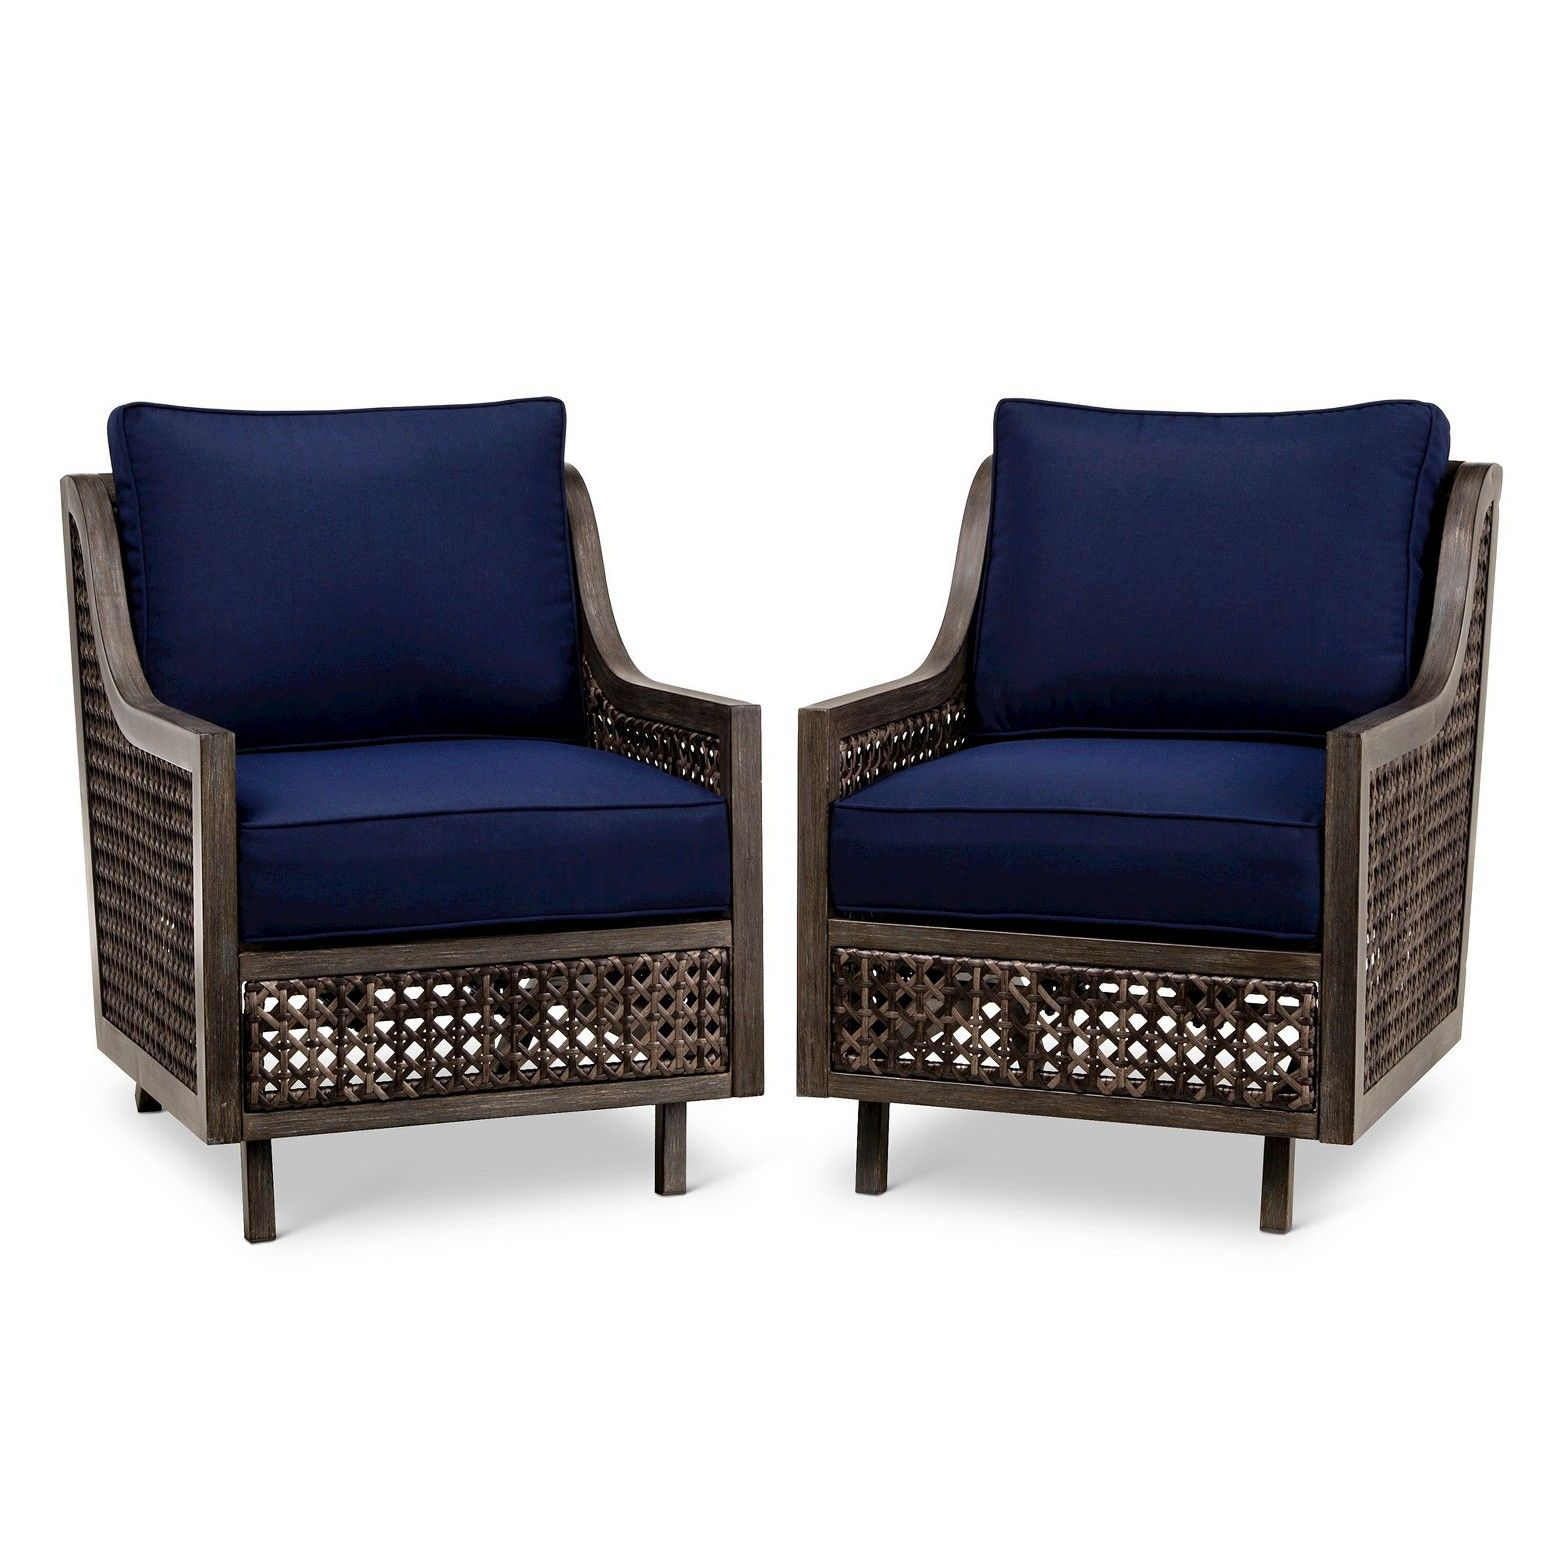 Wicker with intricate pattern • Weather resistant cushions